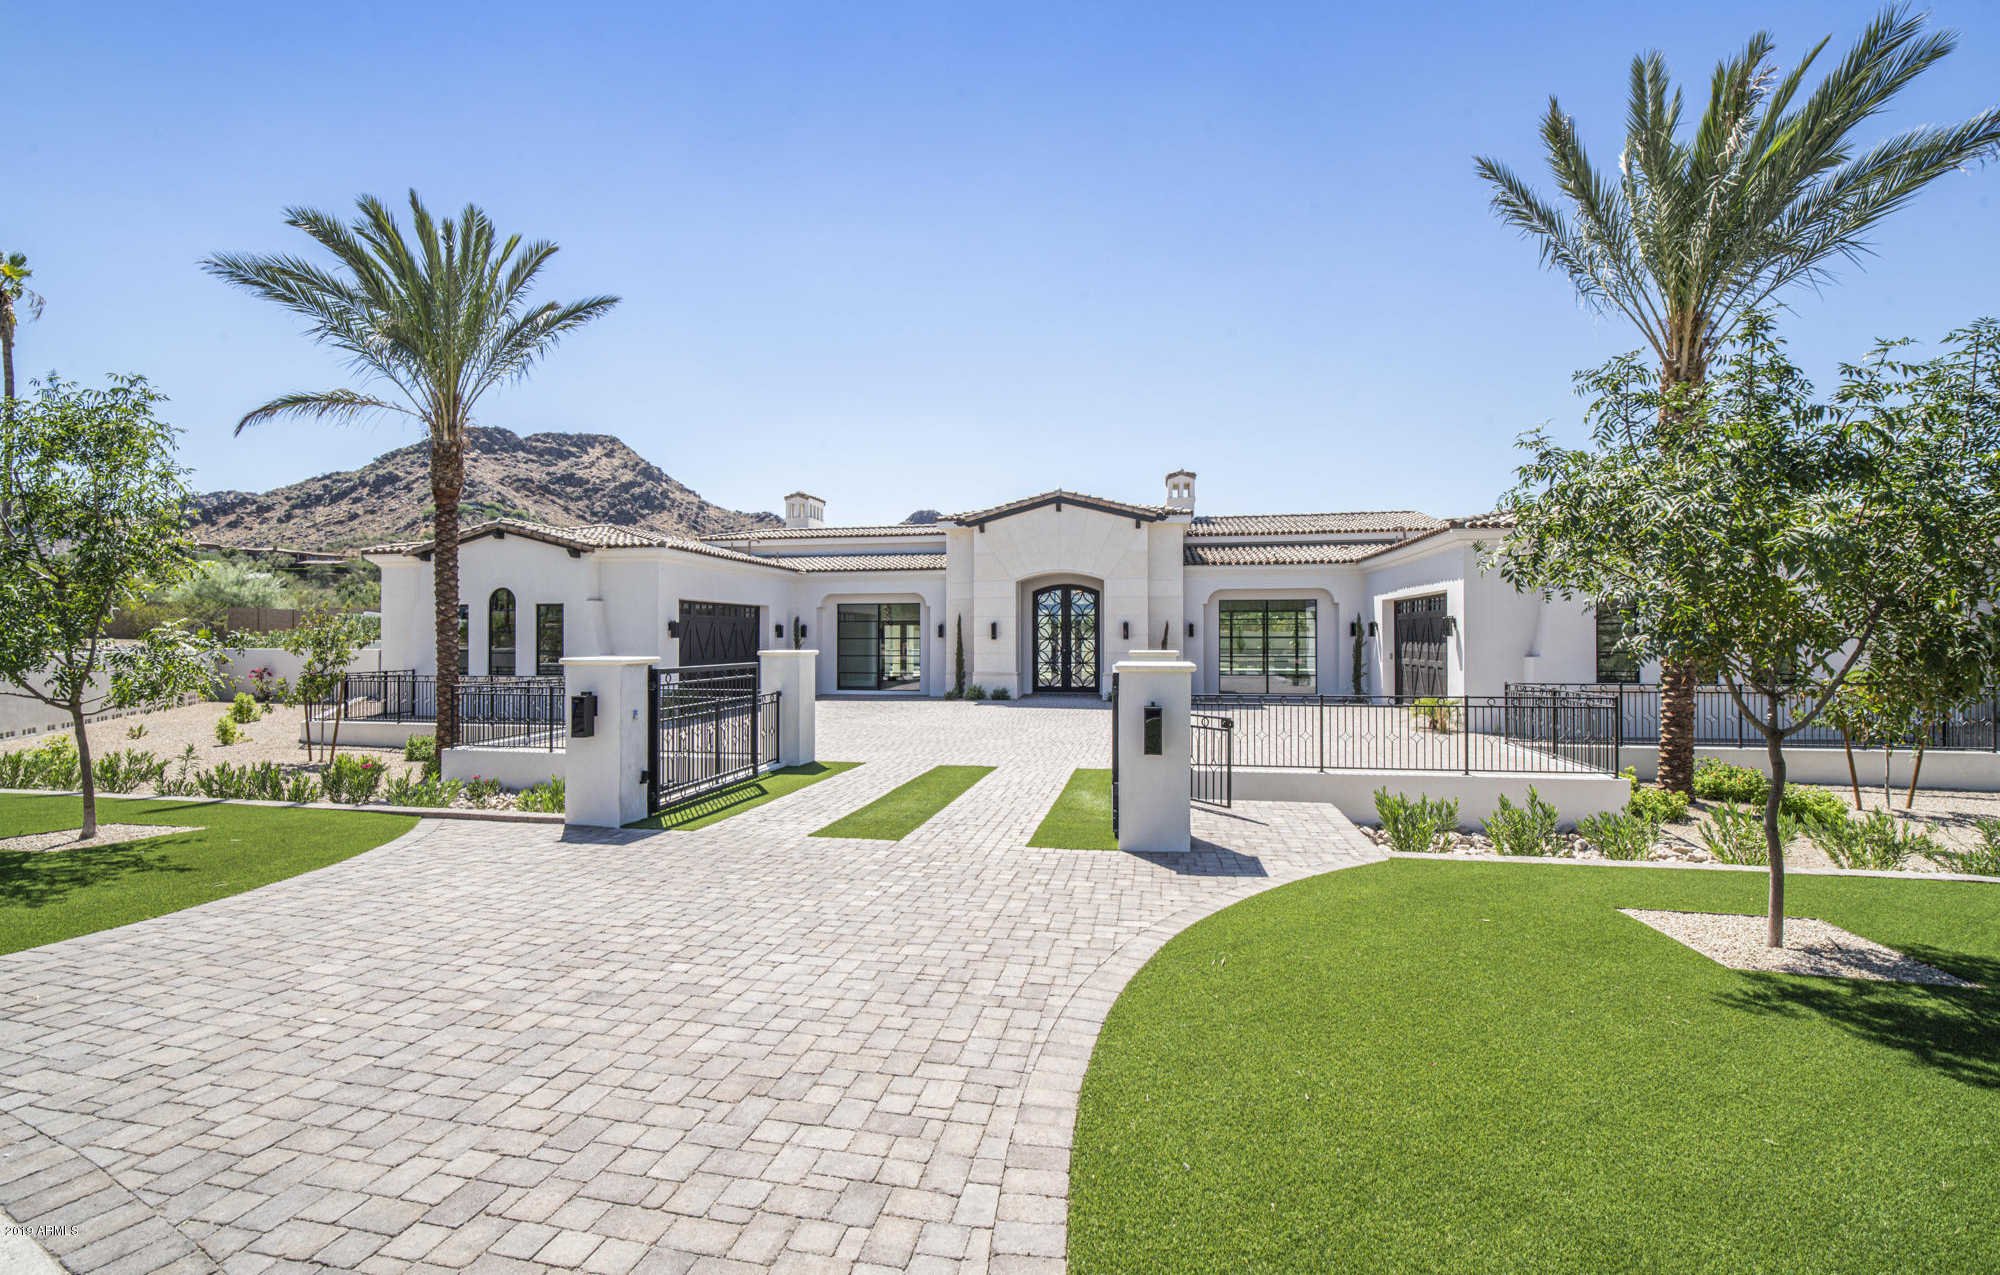 $4,850,000 - 5Br/6Ba - Home for Sale in Bret Hills Mcr 010729, Paradise Valley